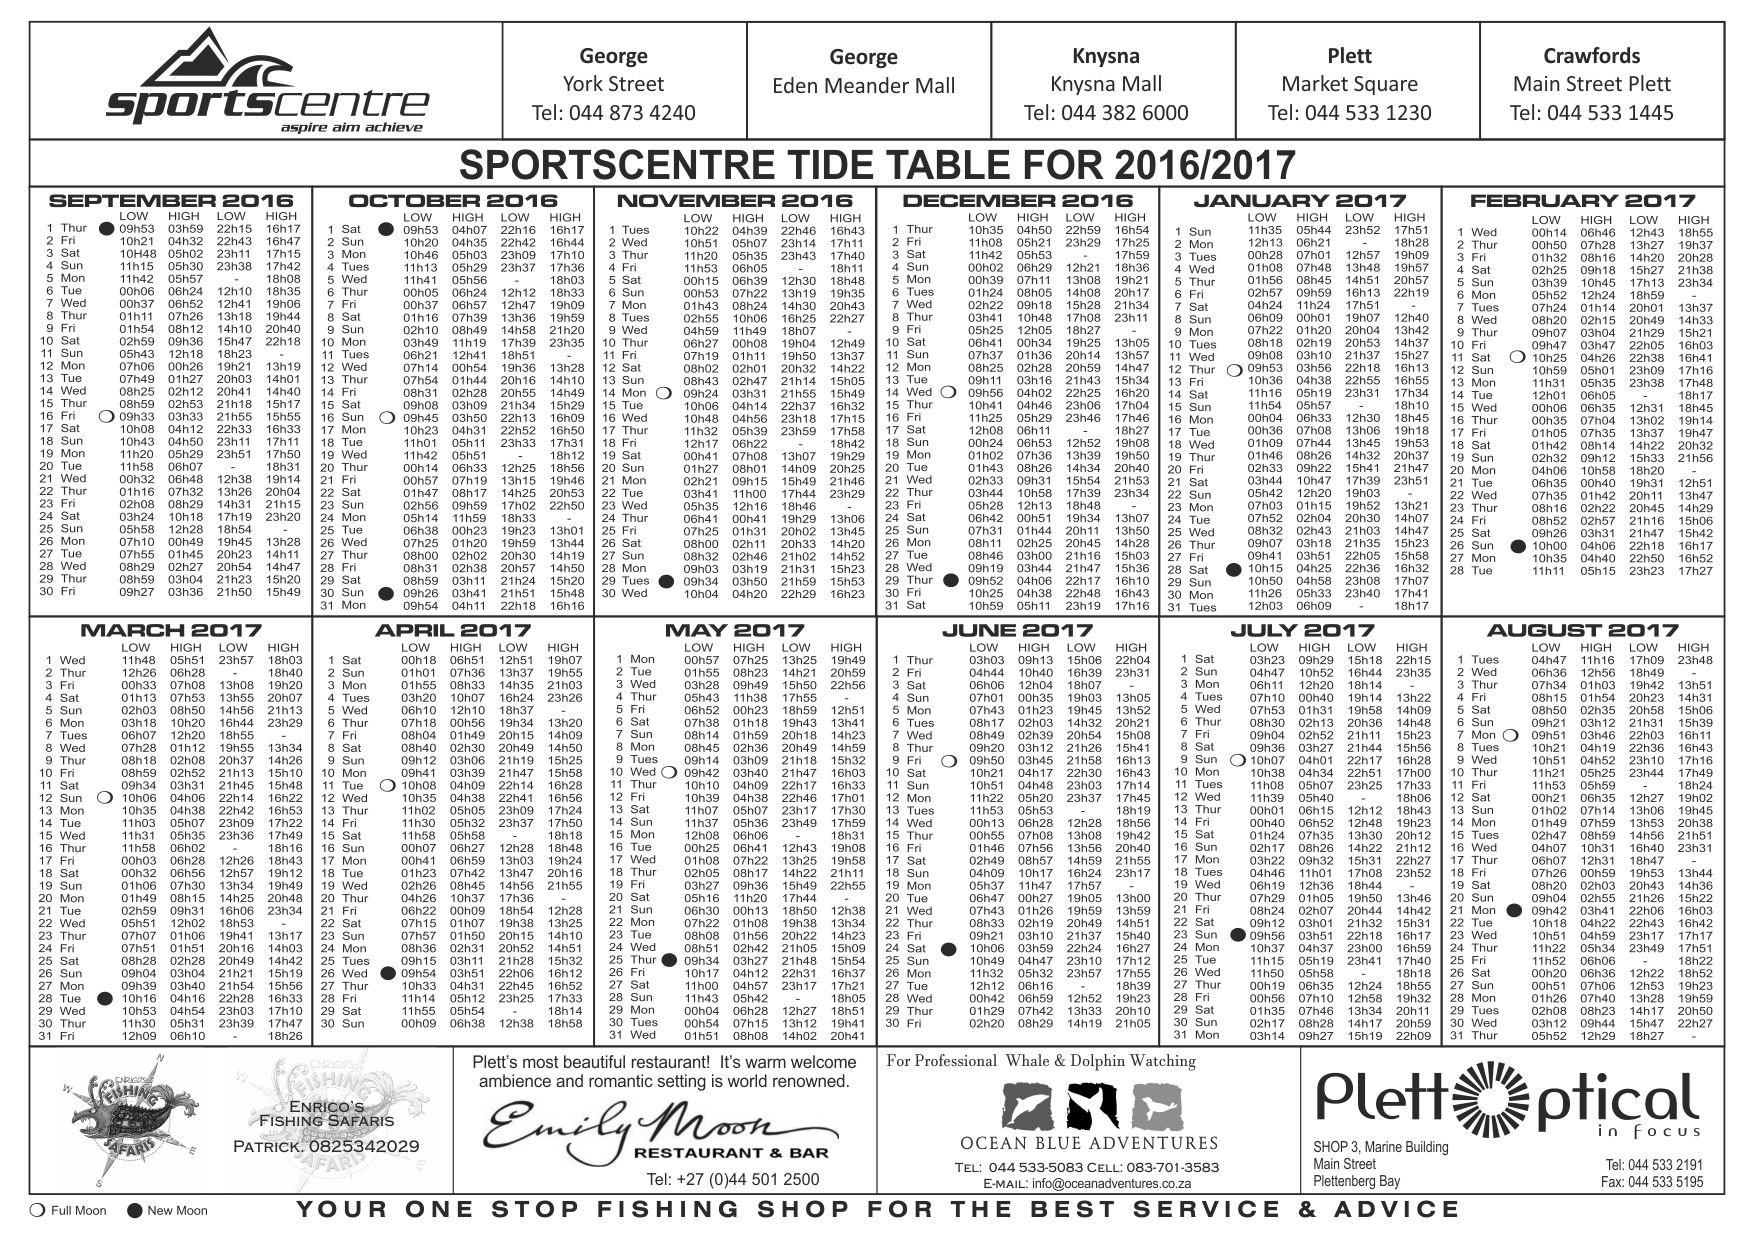 Bay tide chart images free any chart examples tide table for plett weather and tides in plett tide table tide table for plett nvjuhfo nvjuhfo Gallery